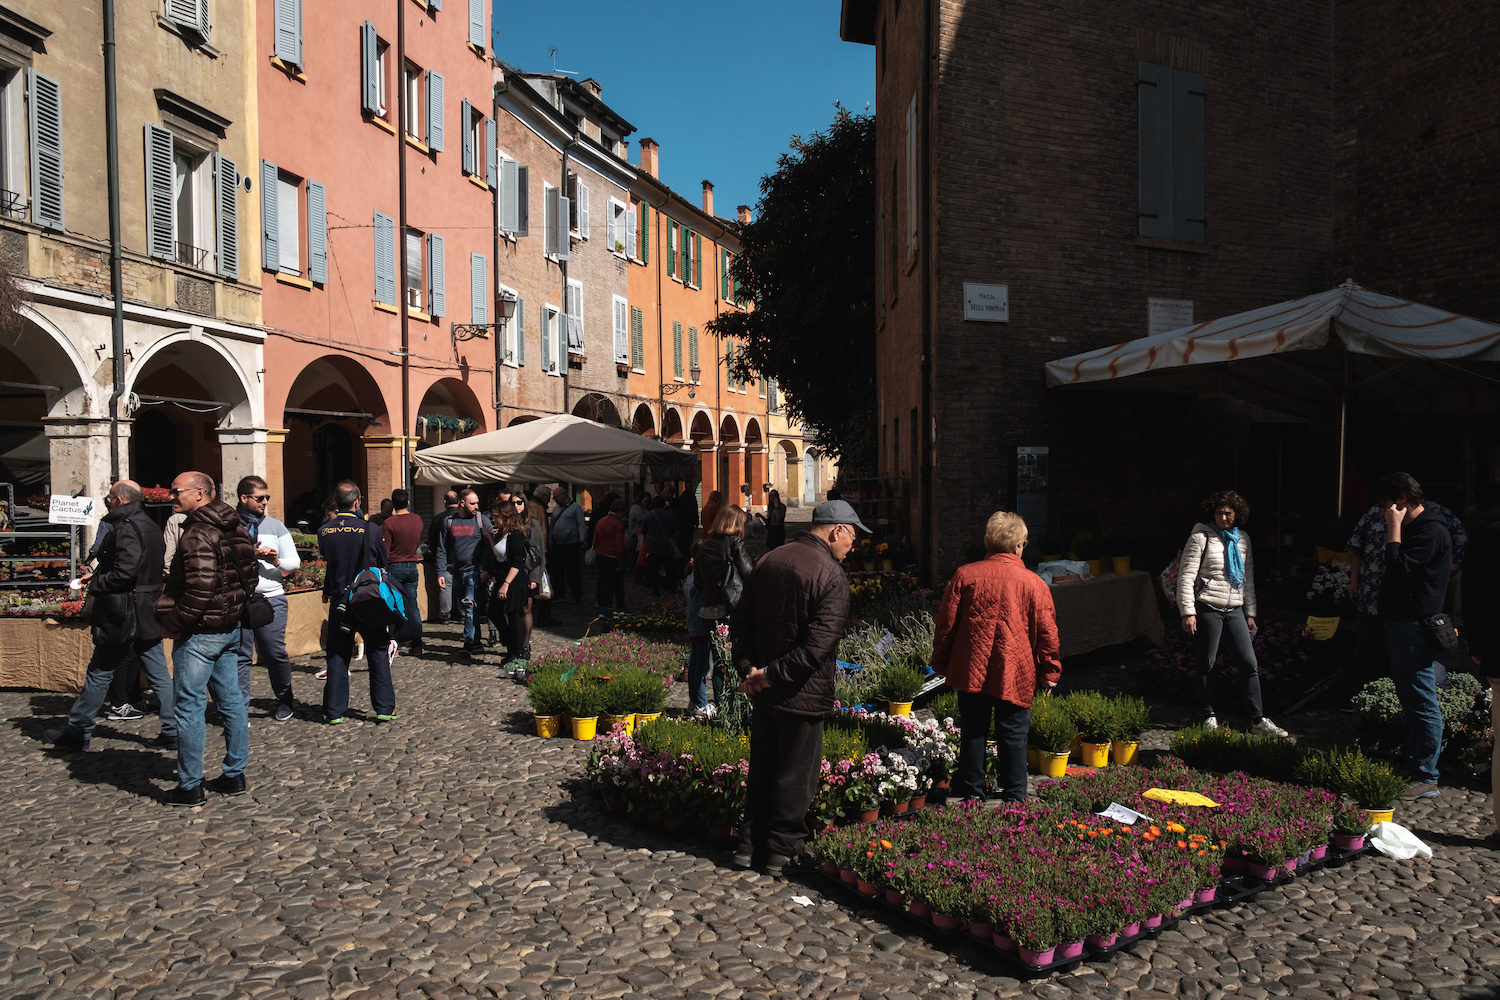 Flower market in Modena - Travel and Street Photography by Ben Holbrook from DriftwoodJournals.com-5493